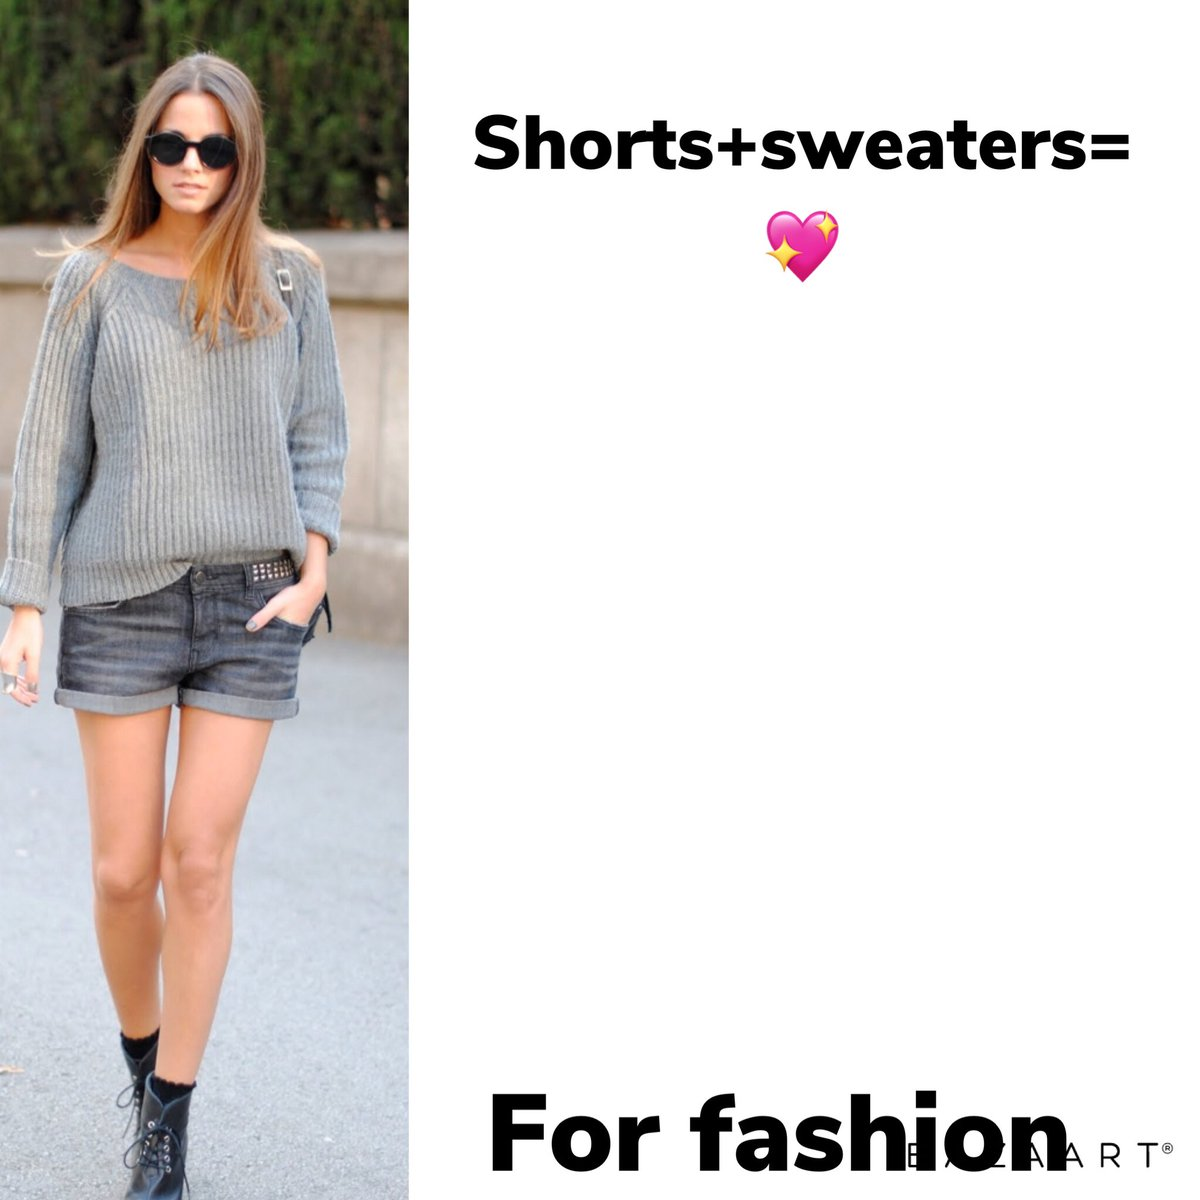 #fashion of day!Sweater!ways to style! pic.twitter.com/TxSEu6OUbR